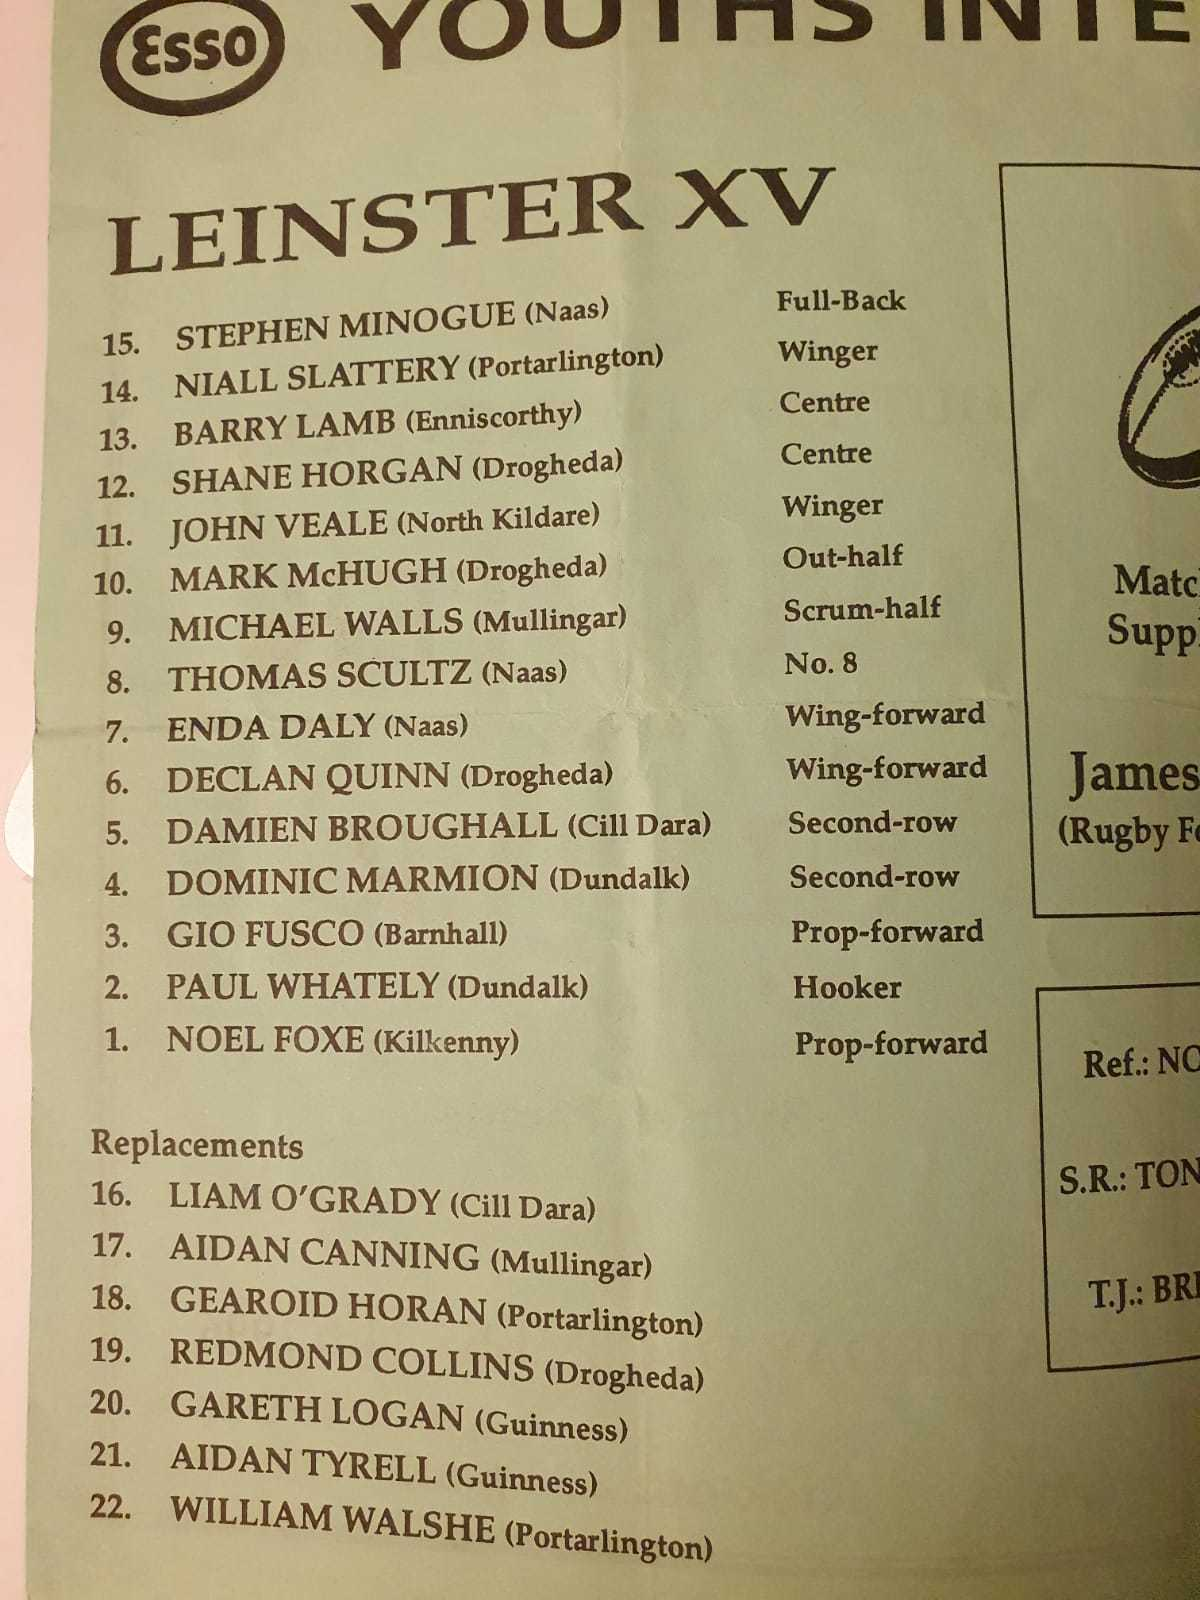 Leinster 20youths 201996 97